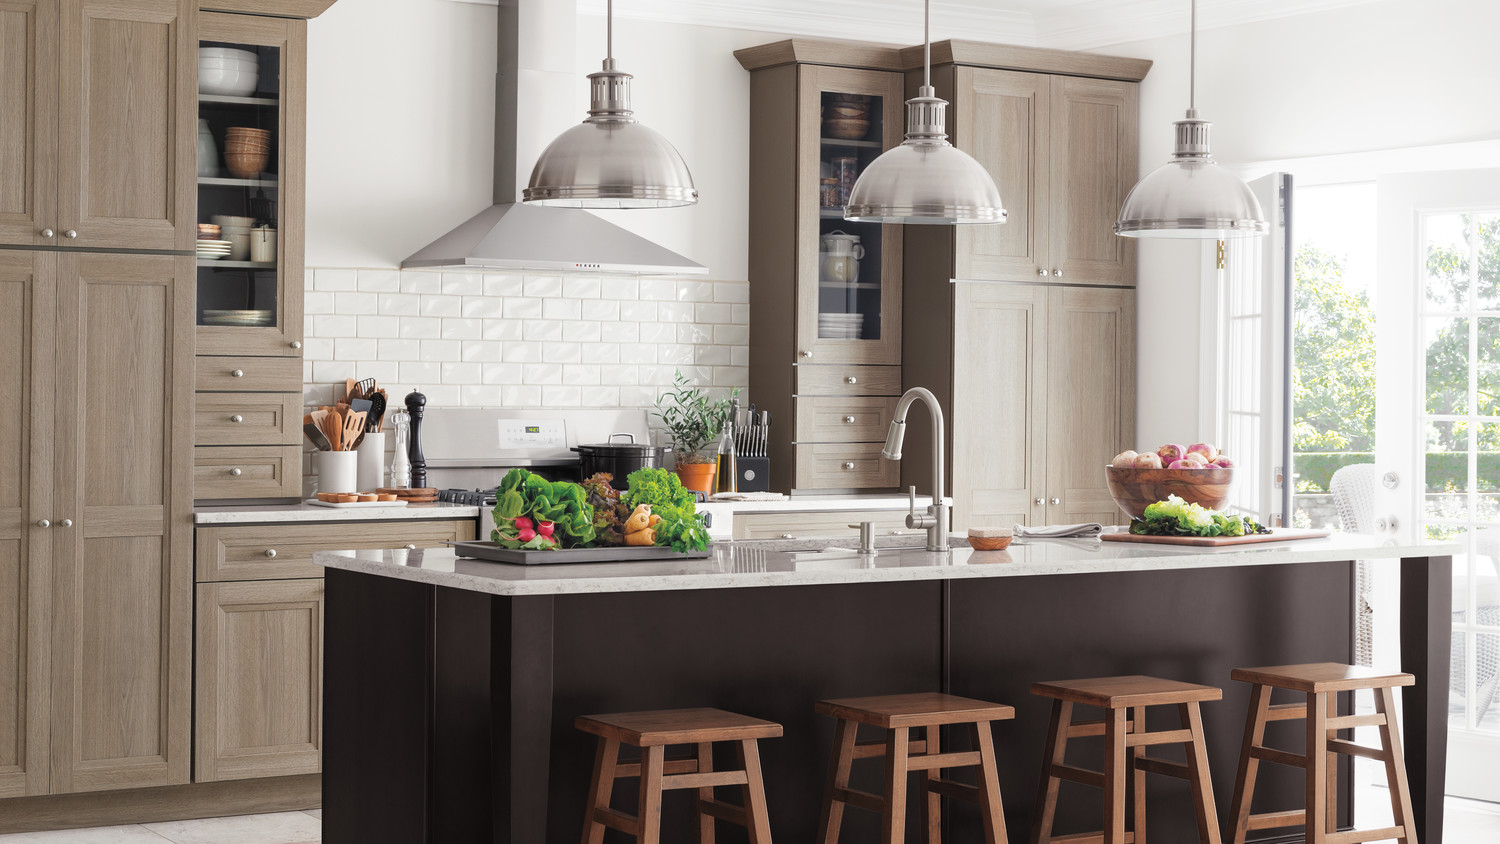 Video Martha Stewart Shares Her Kitchen Design